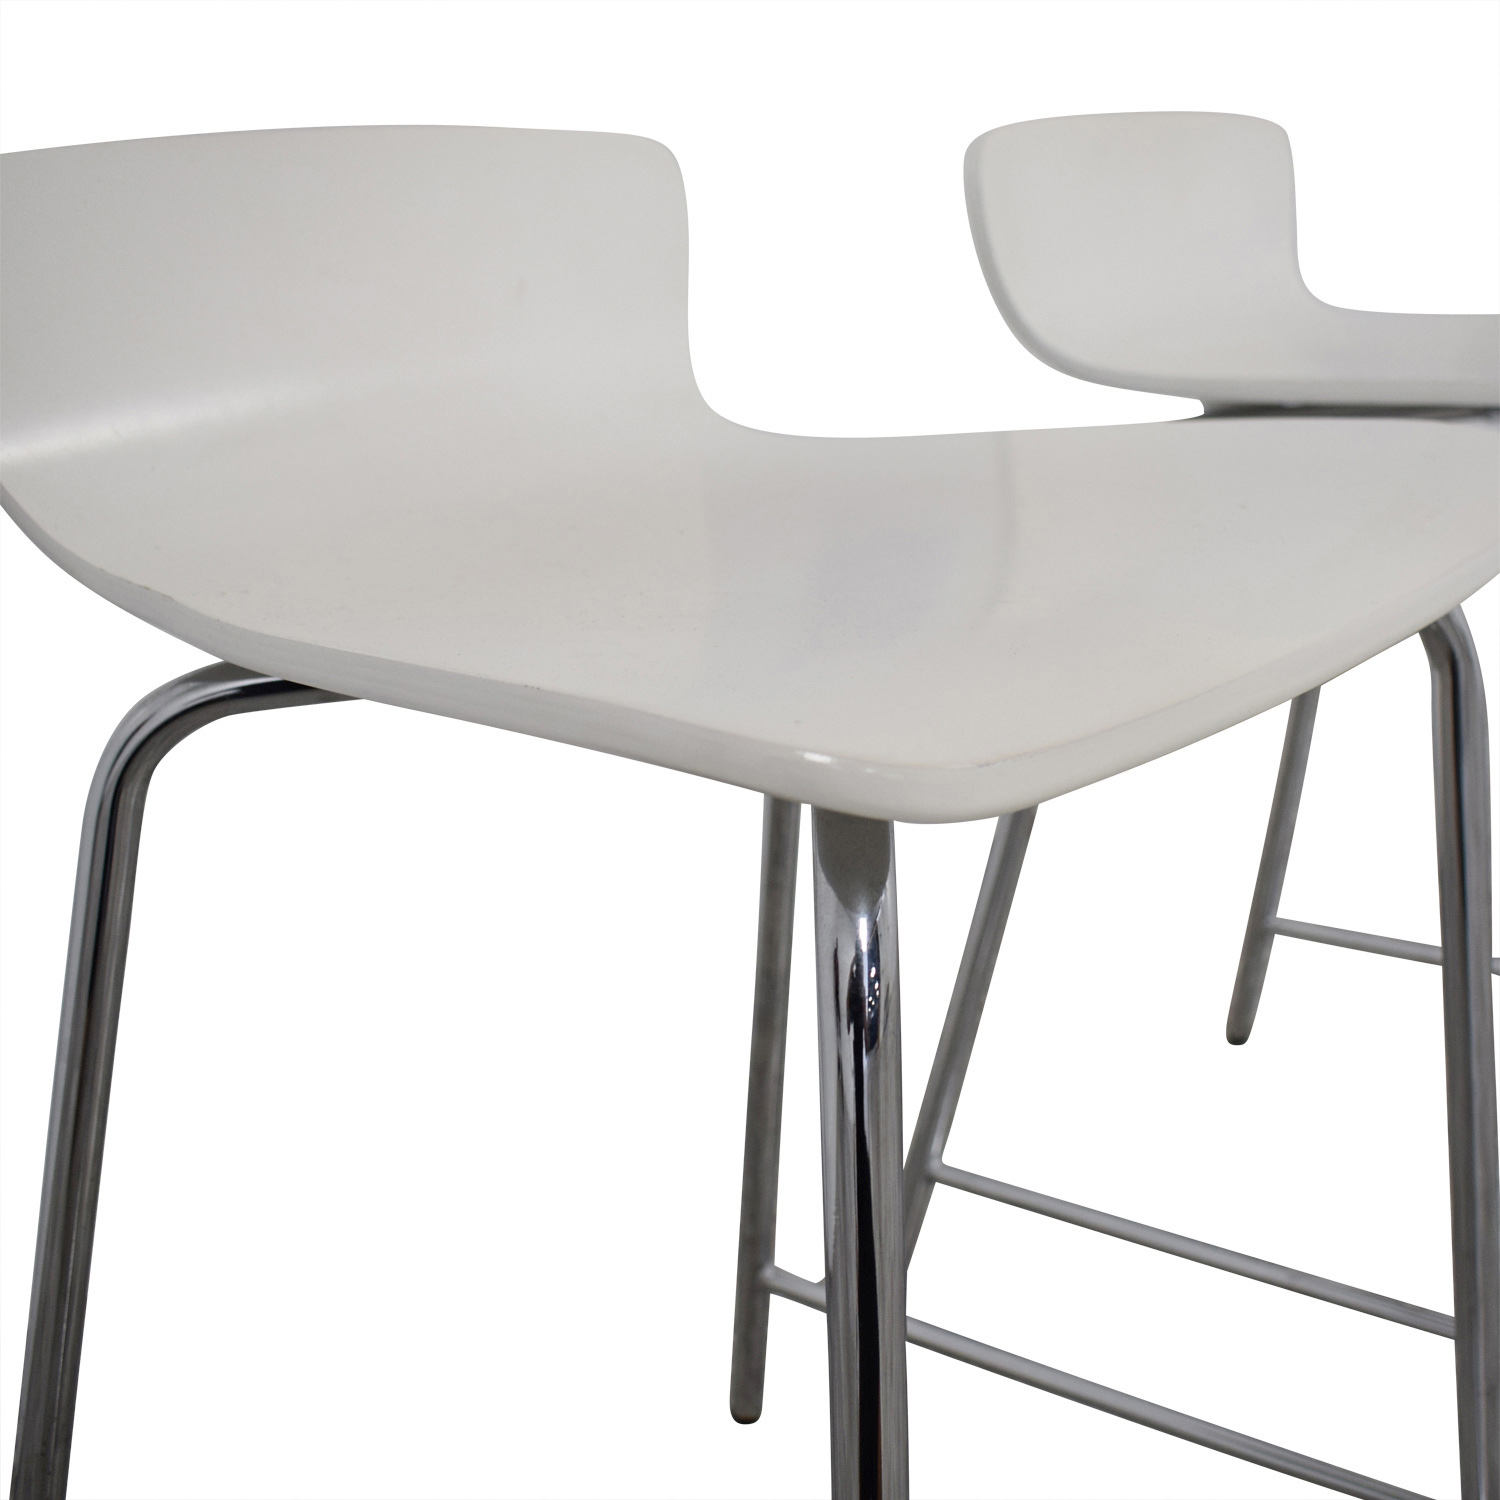 Crate and Barrel Crate and Barrel Felix White Counter Stools for sale